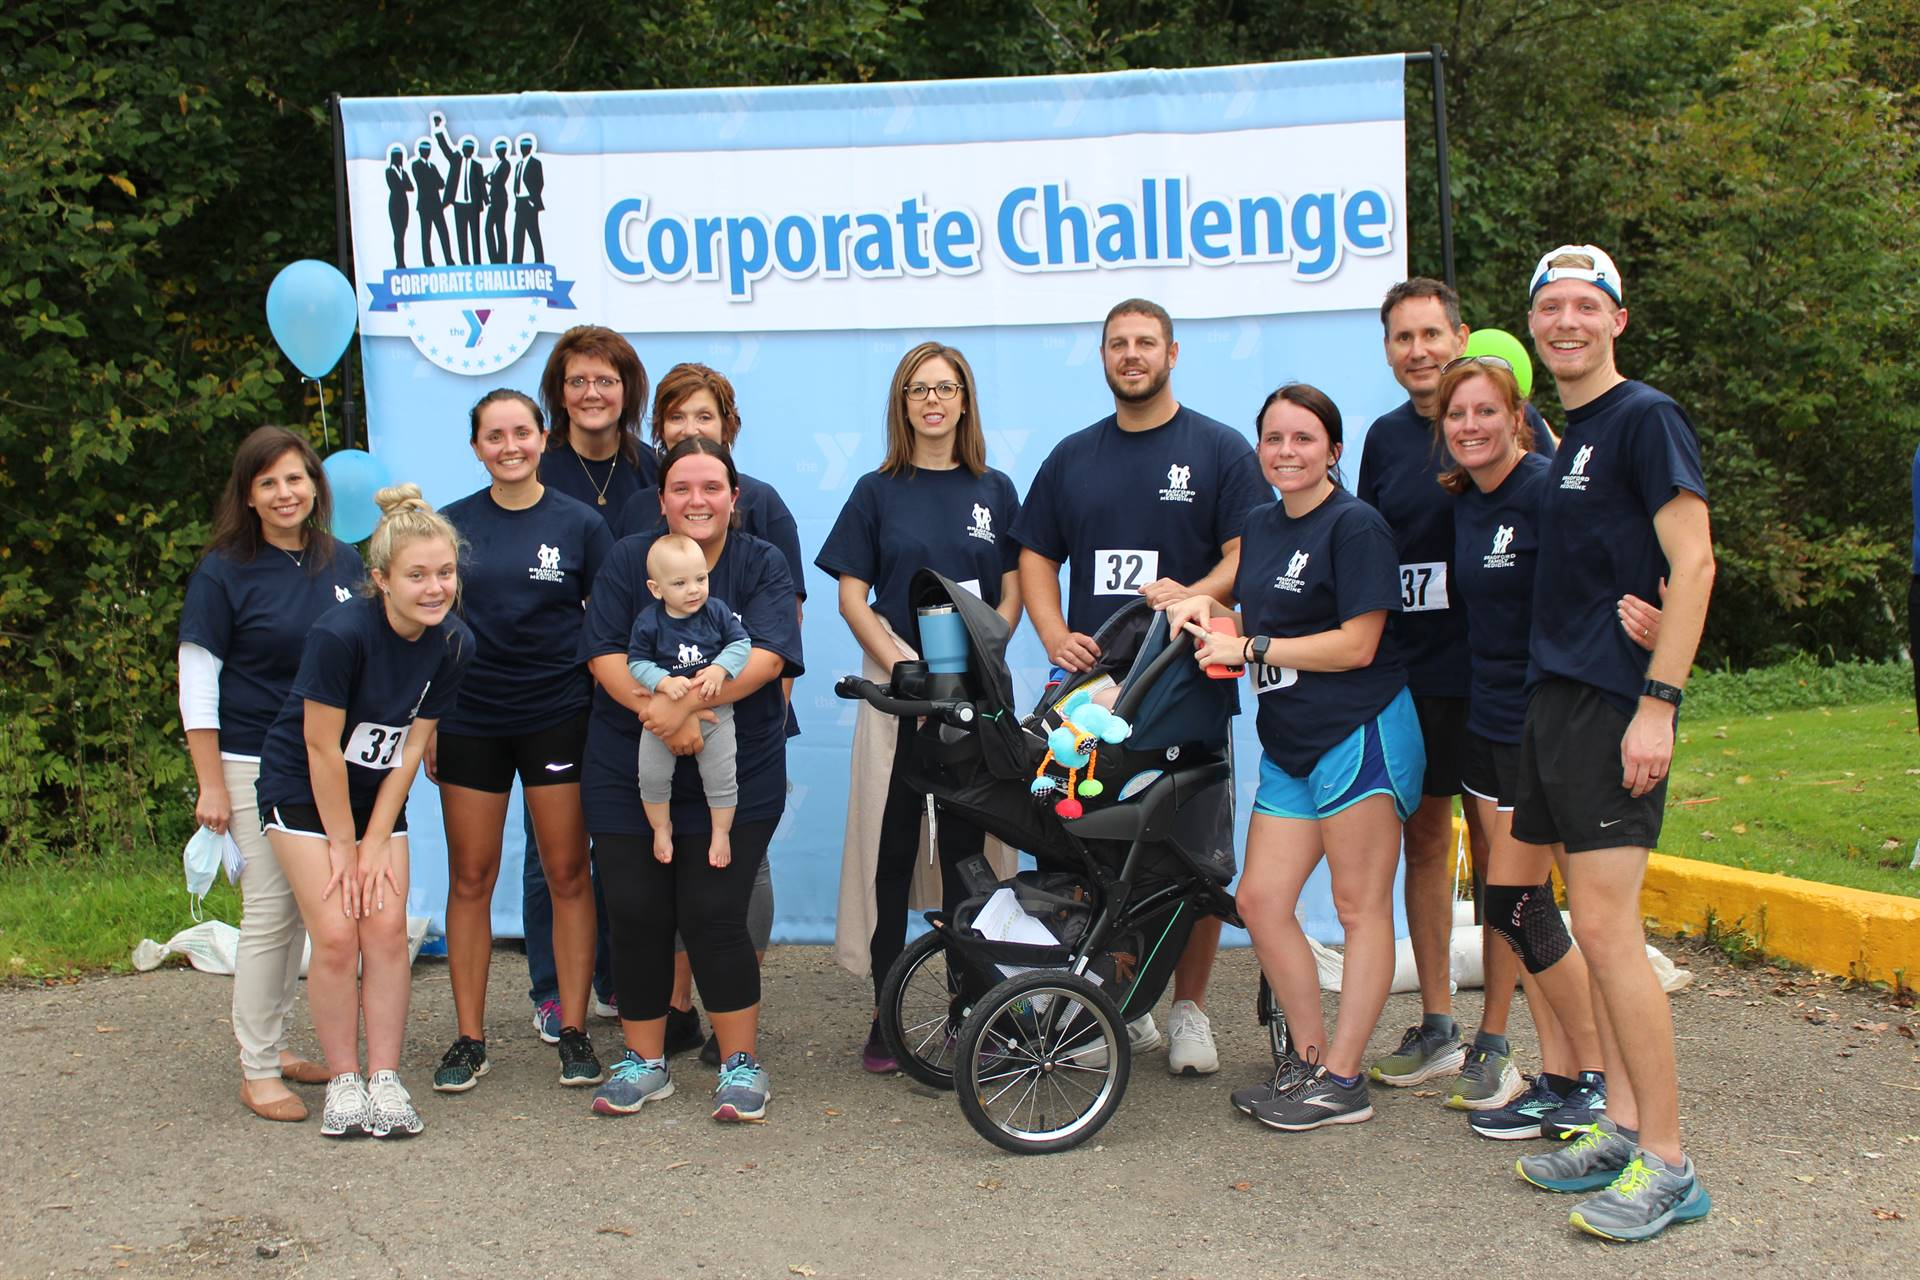 group posing in front of corporate challenge banner